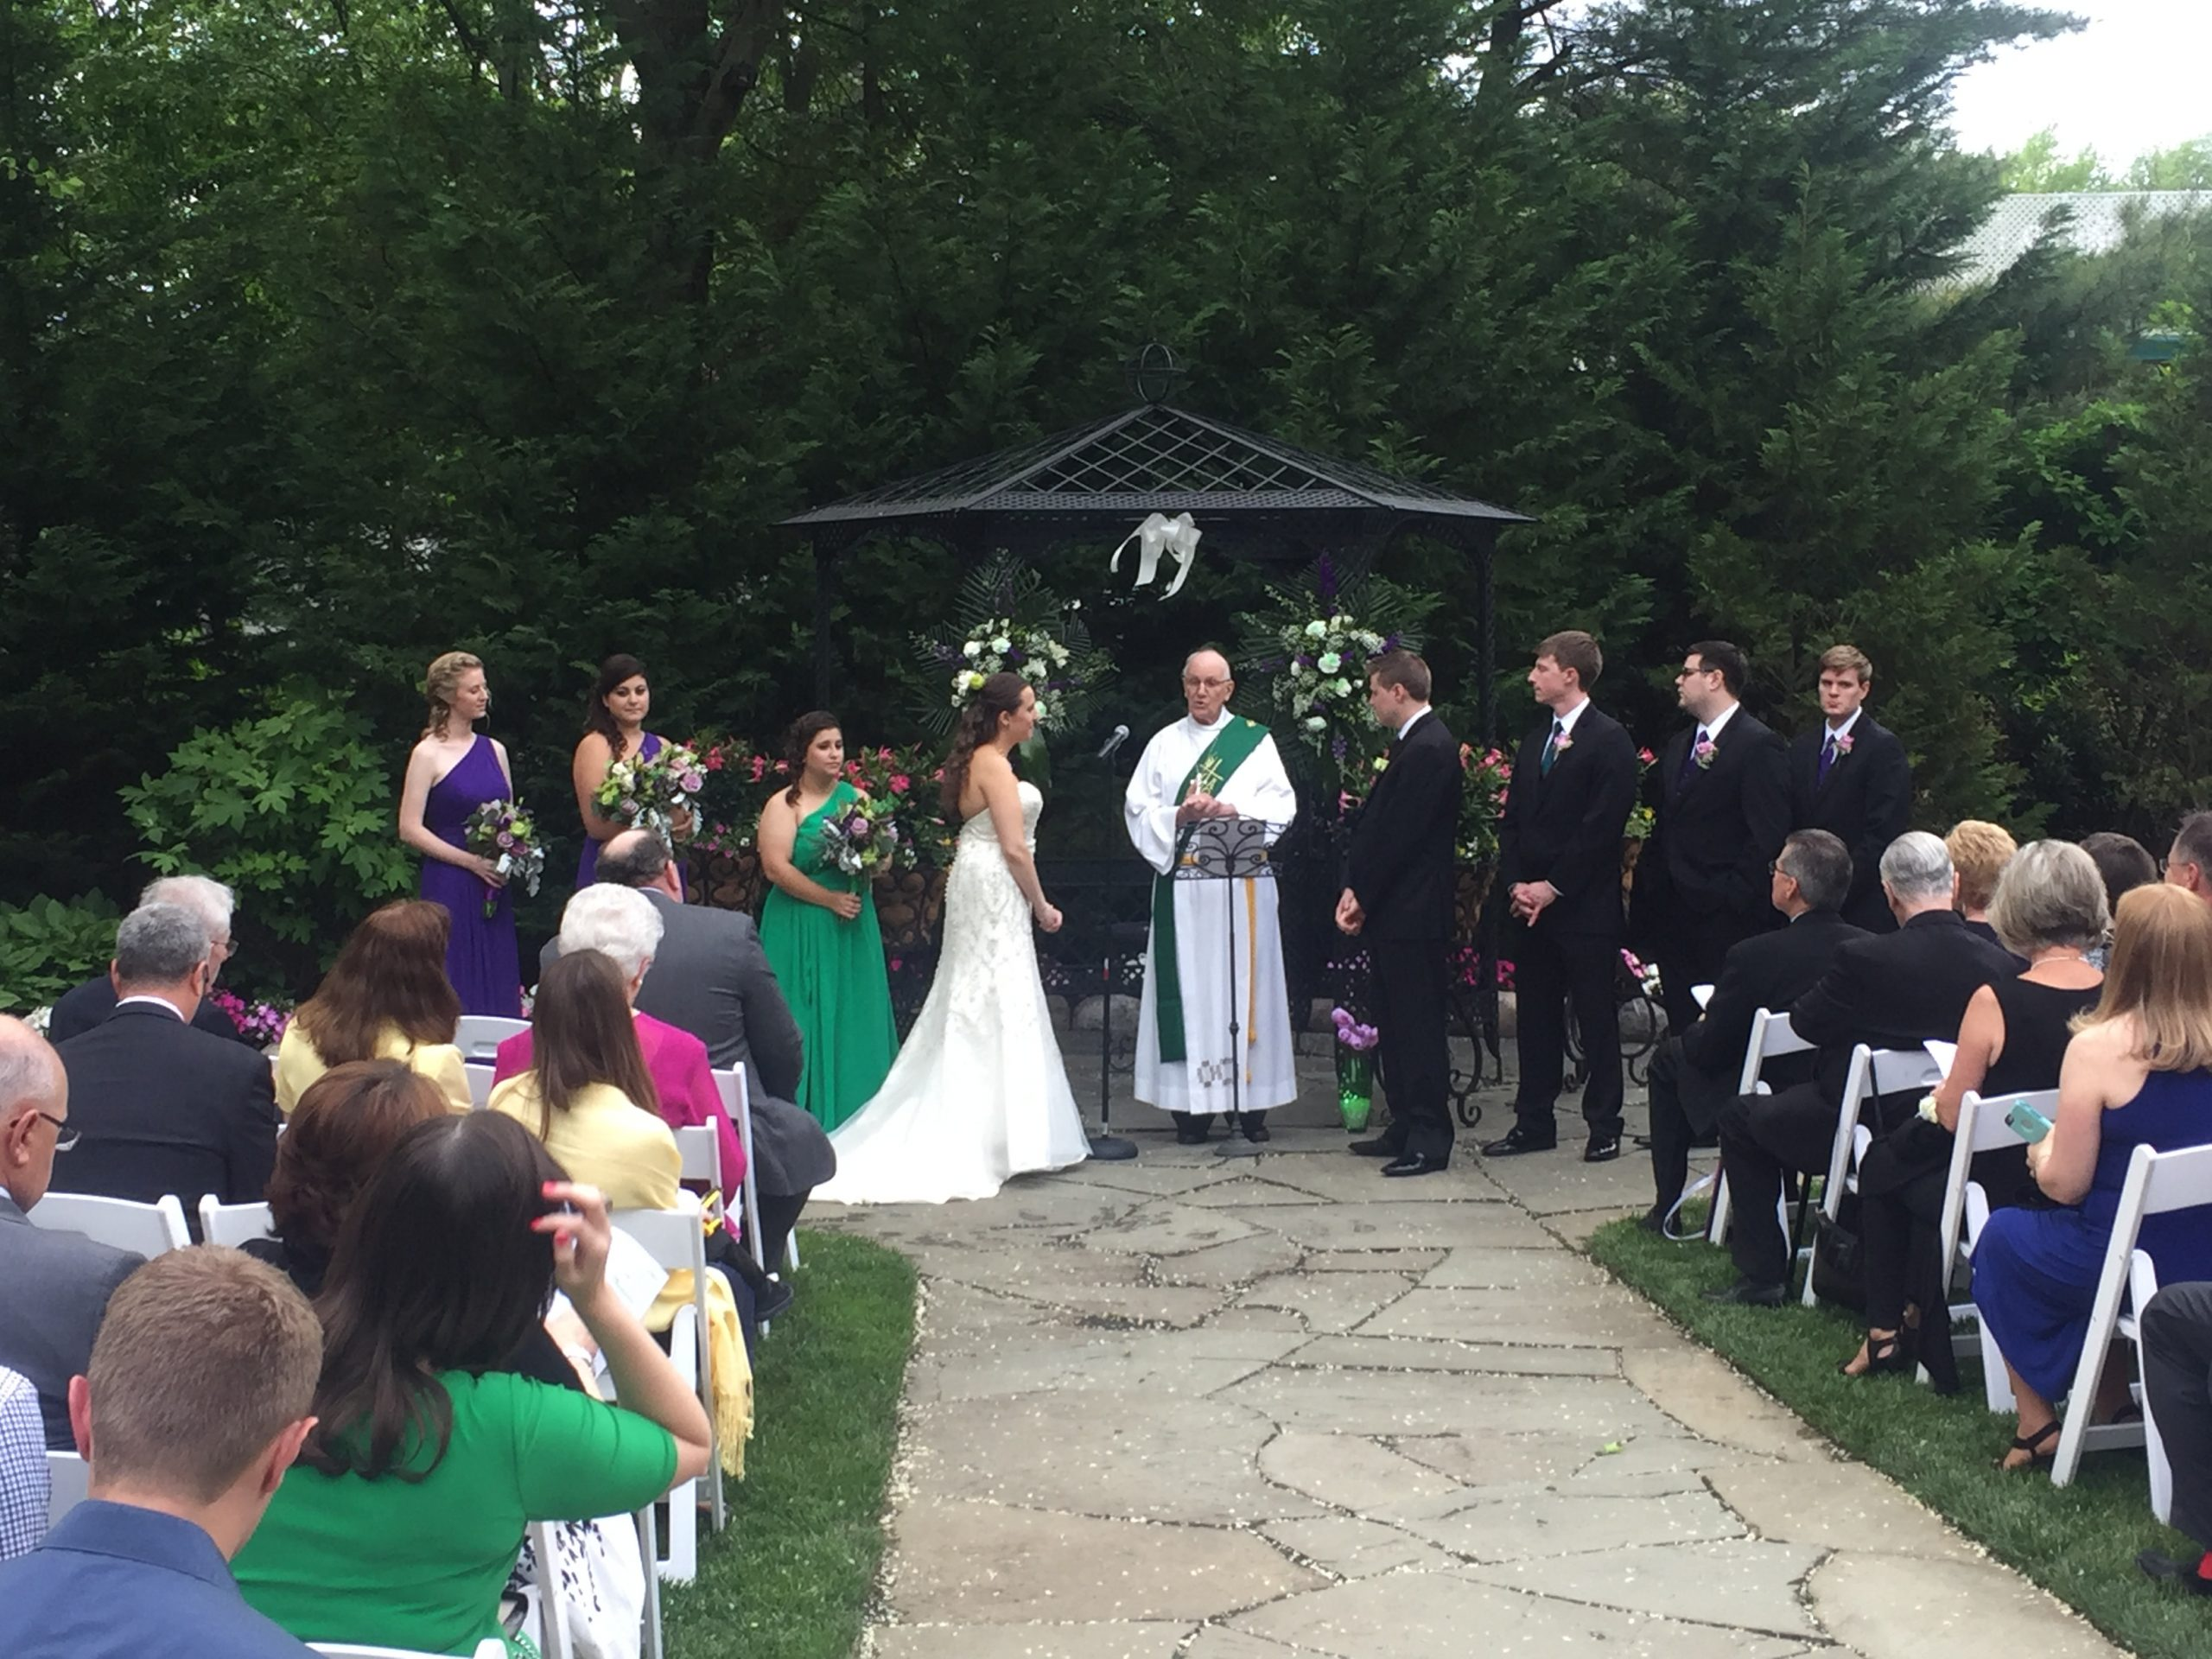 The rains threatened but in the end Evelyn and Sean got married outside!